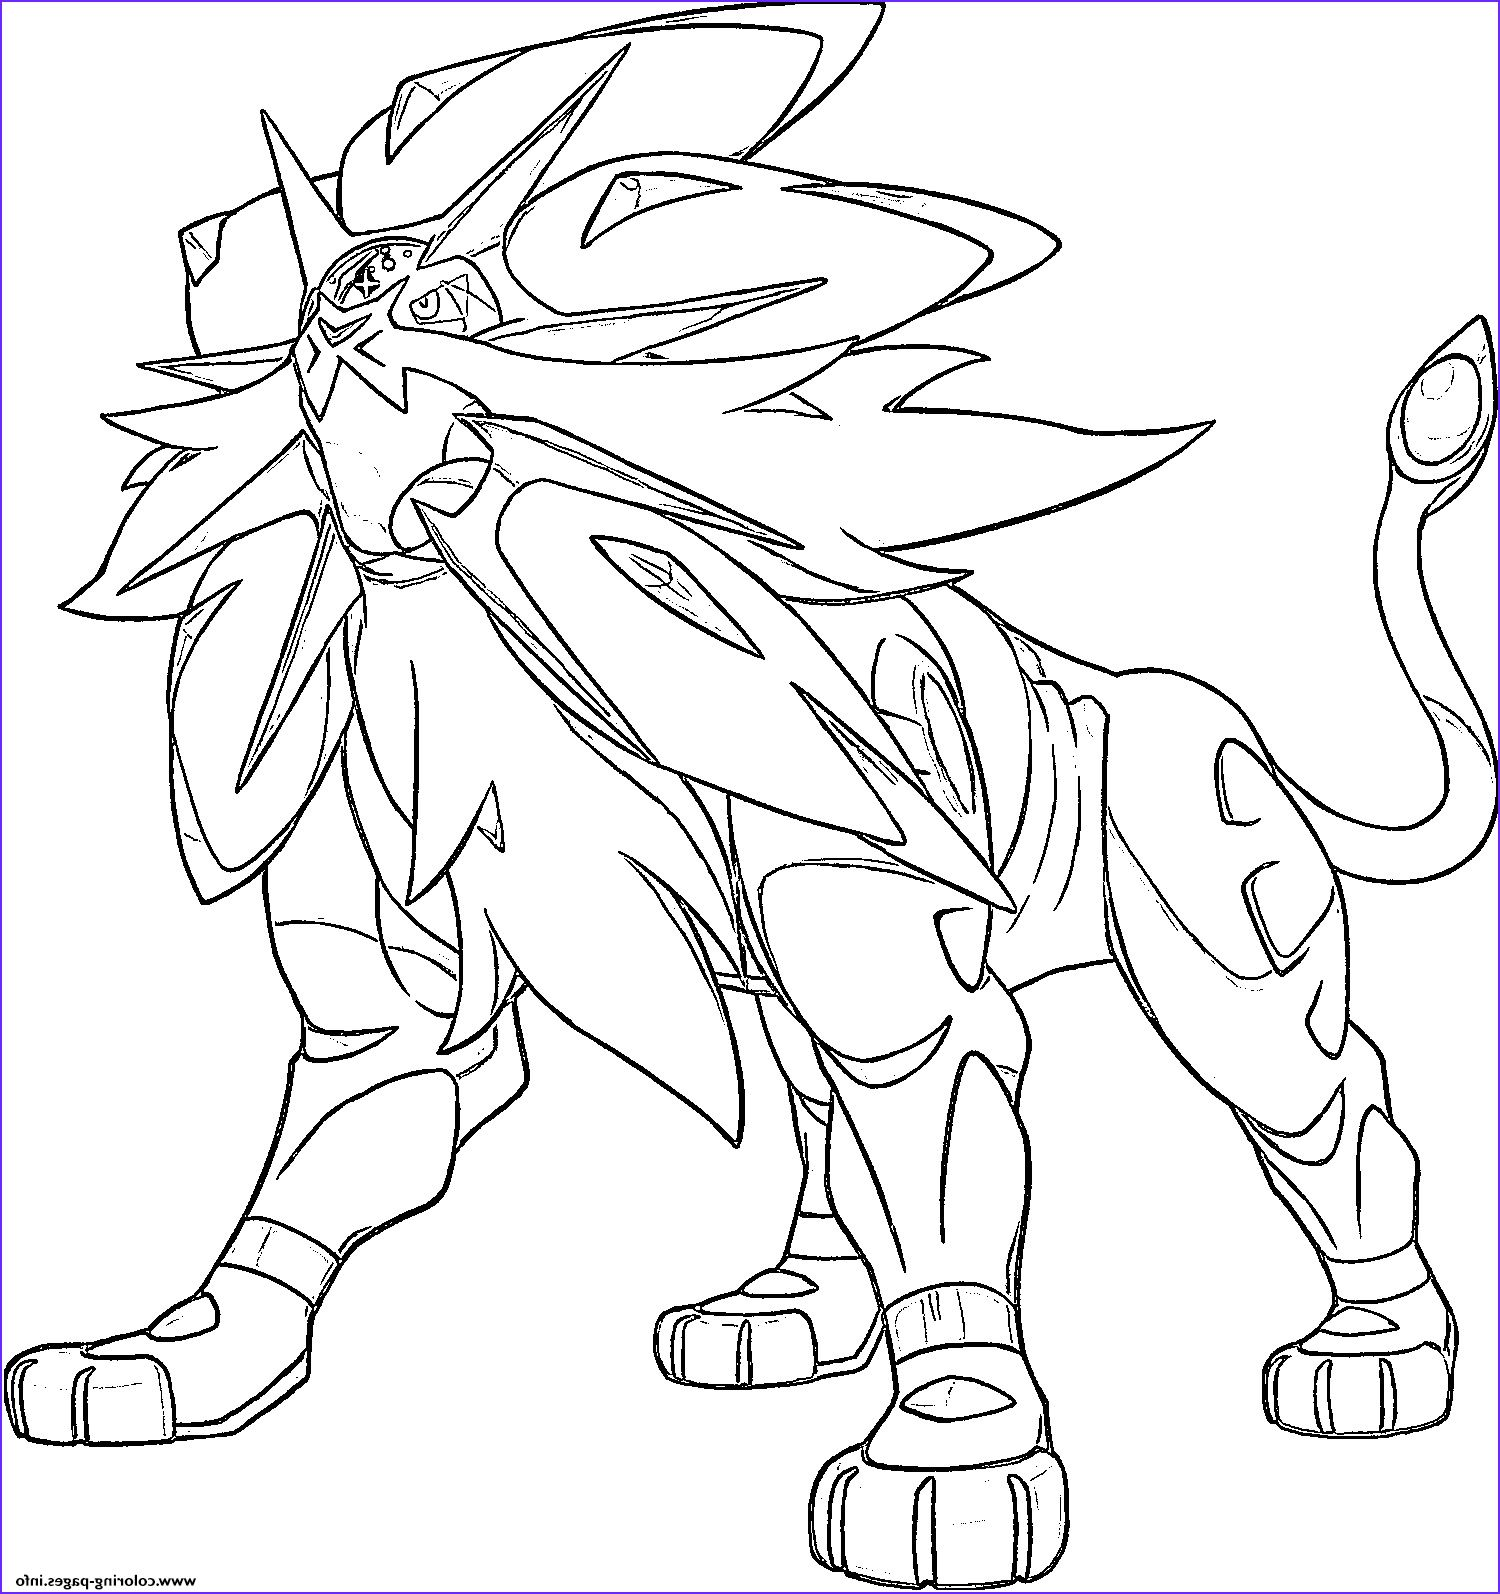 Pin By J Hendershot On Coloring Pages In 2020 Pokemon Coloring Pages Pokemon Coloring Sheets Coloring Pages